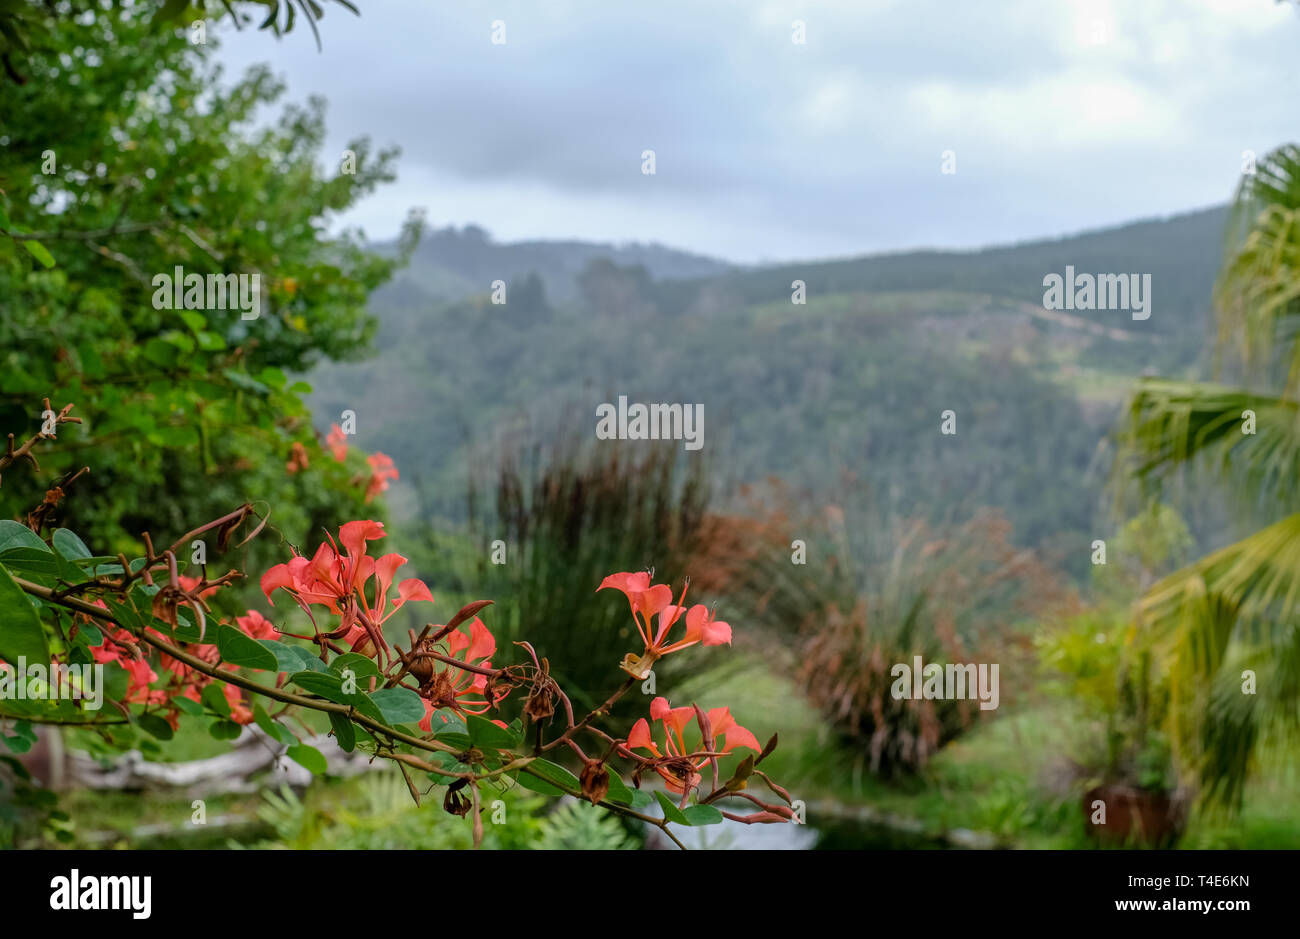 Hillside garden with lily pond and mountain view in Sedgefield, Garden Route, South Africa. - Stock Image